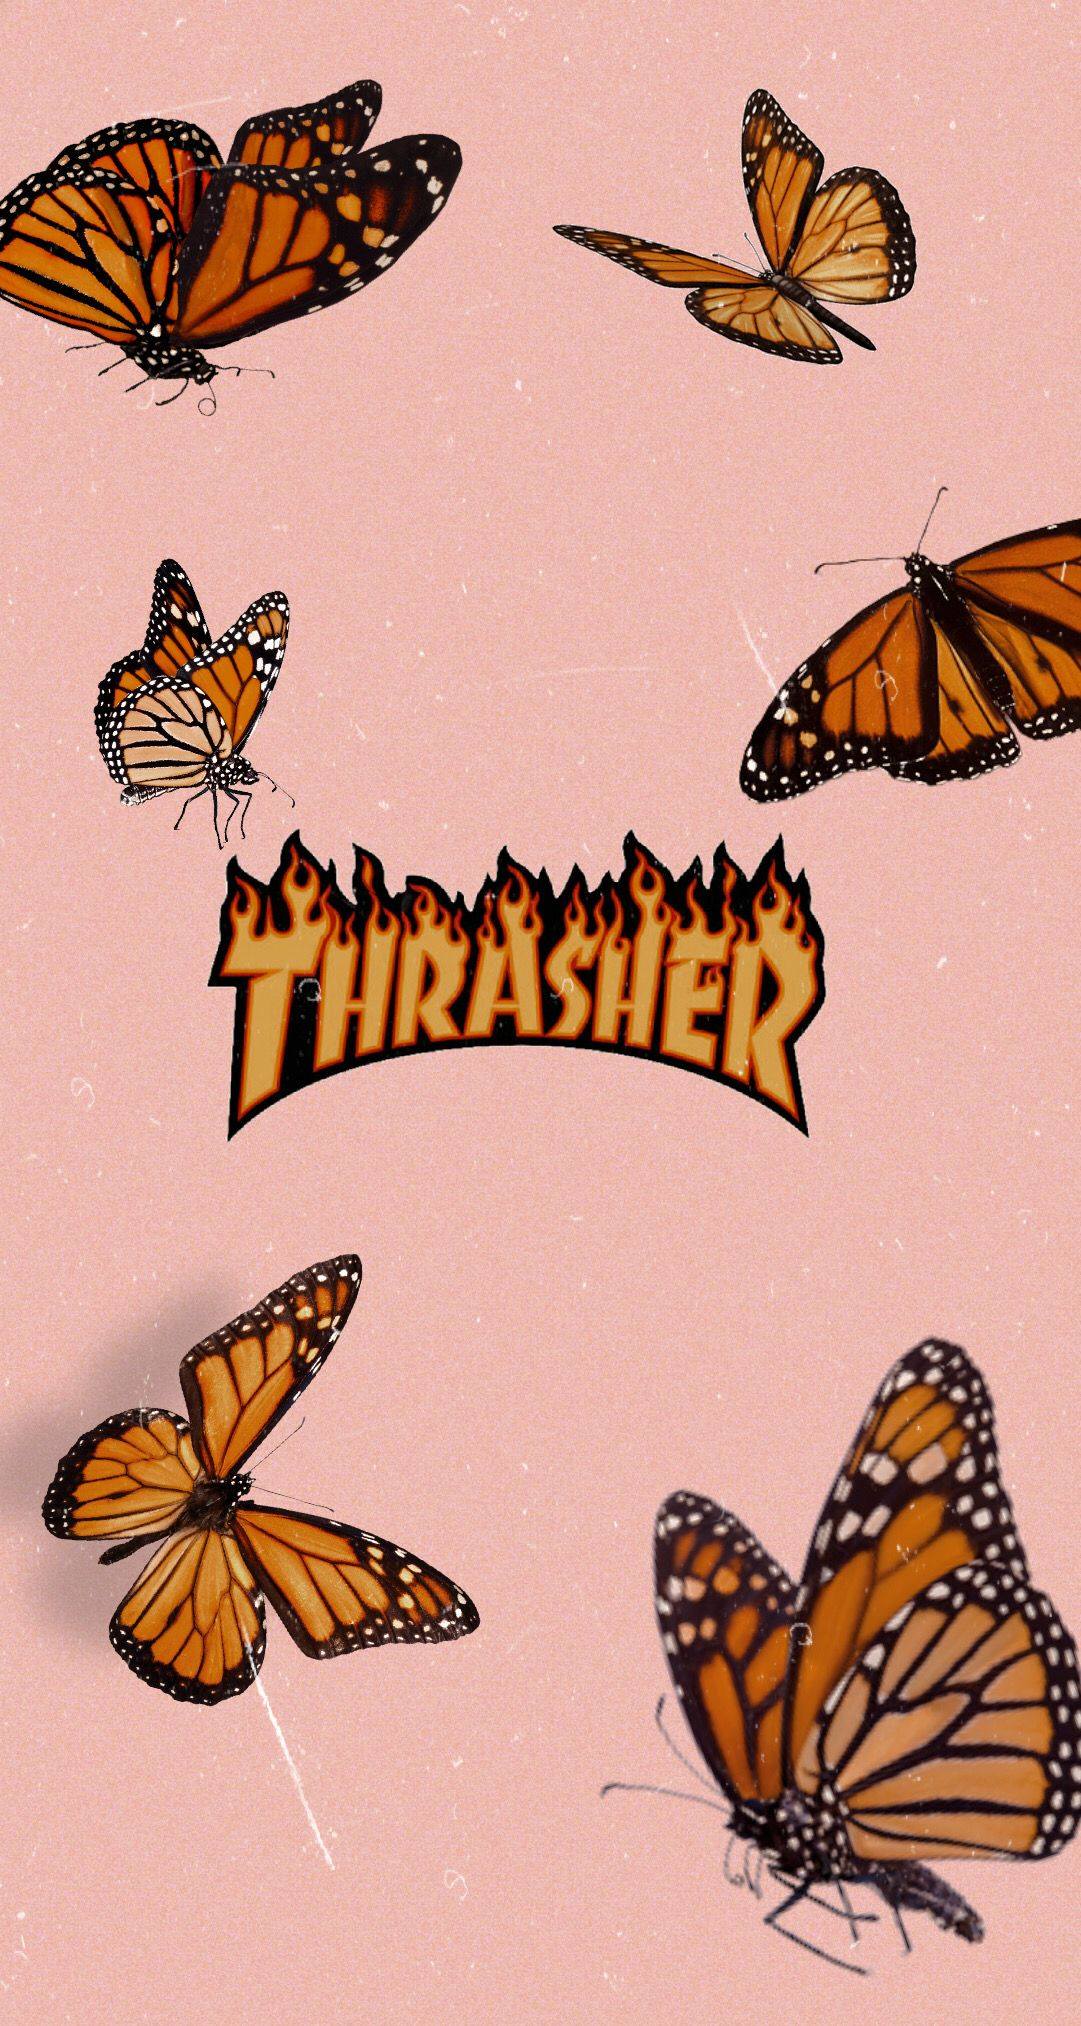 Thrasher Butterfly Wallpaper For Iphone Butterfly Wallpaper Iphone Butterfly Wallpaper Iphone Wallpaper Vintage